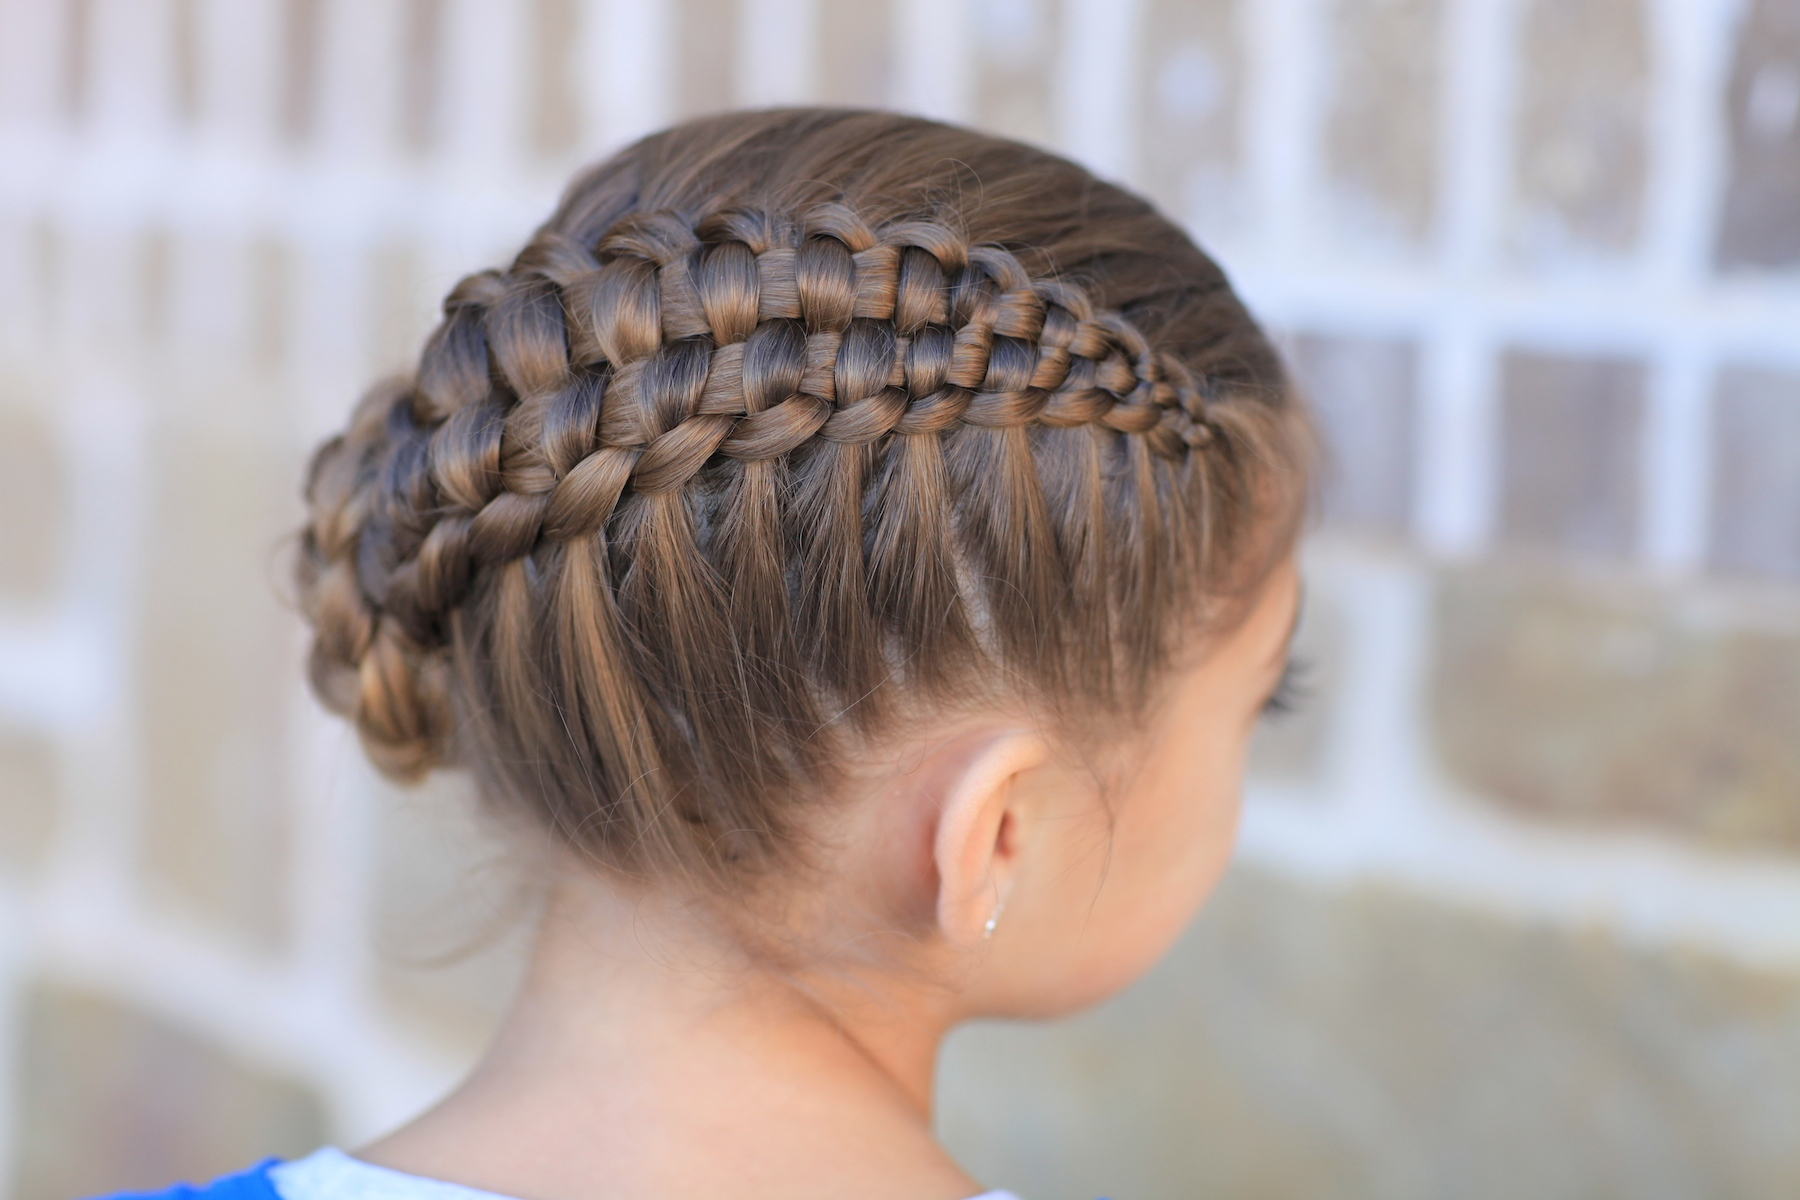 Magnificent Easy Hairstyles High School Ombre Hairstyle Allthatjazzdance Us Hairstyles For Women Draintrainus